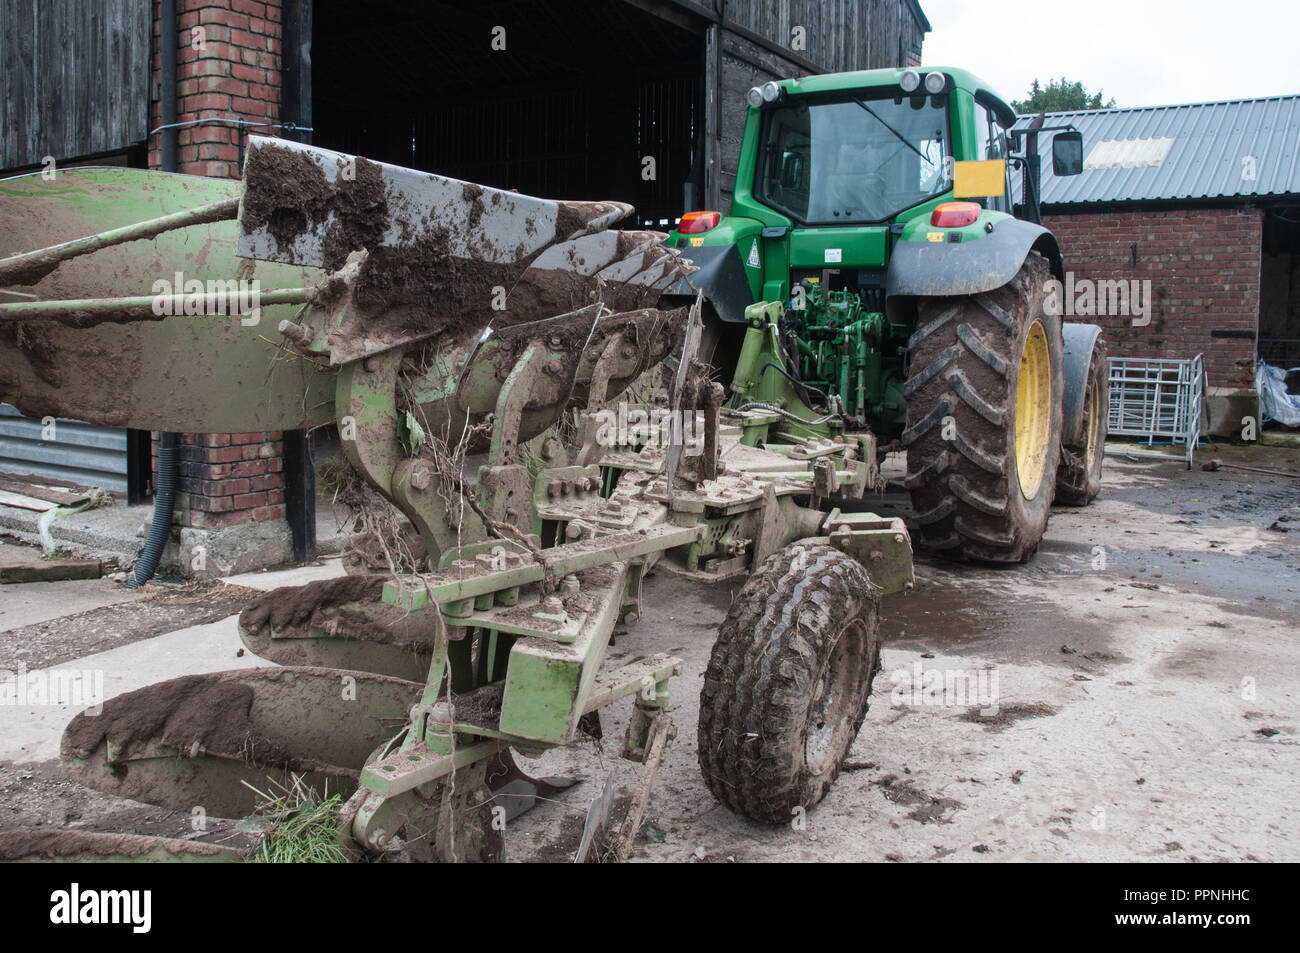 Tractor with plough attachment Stock Photo